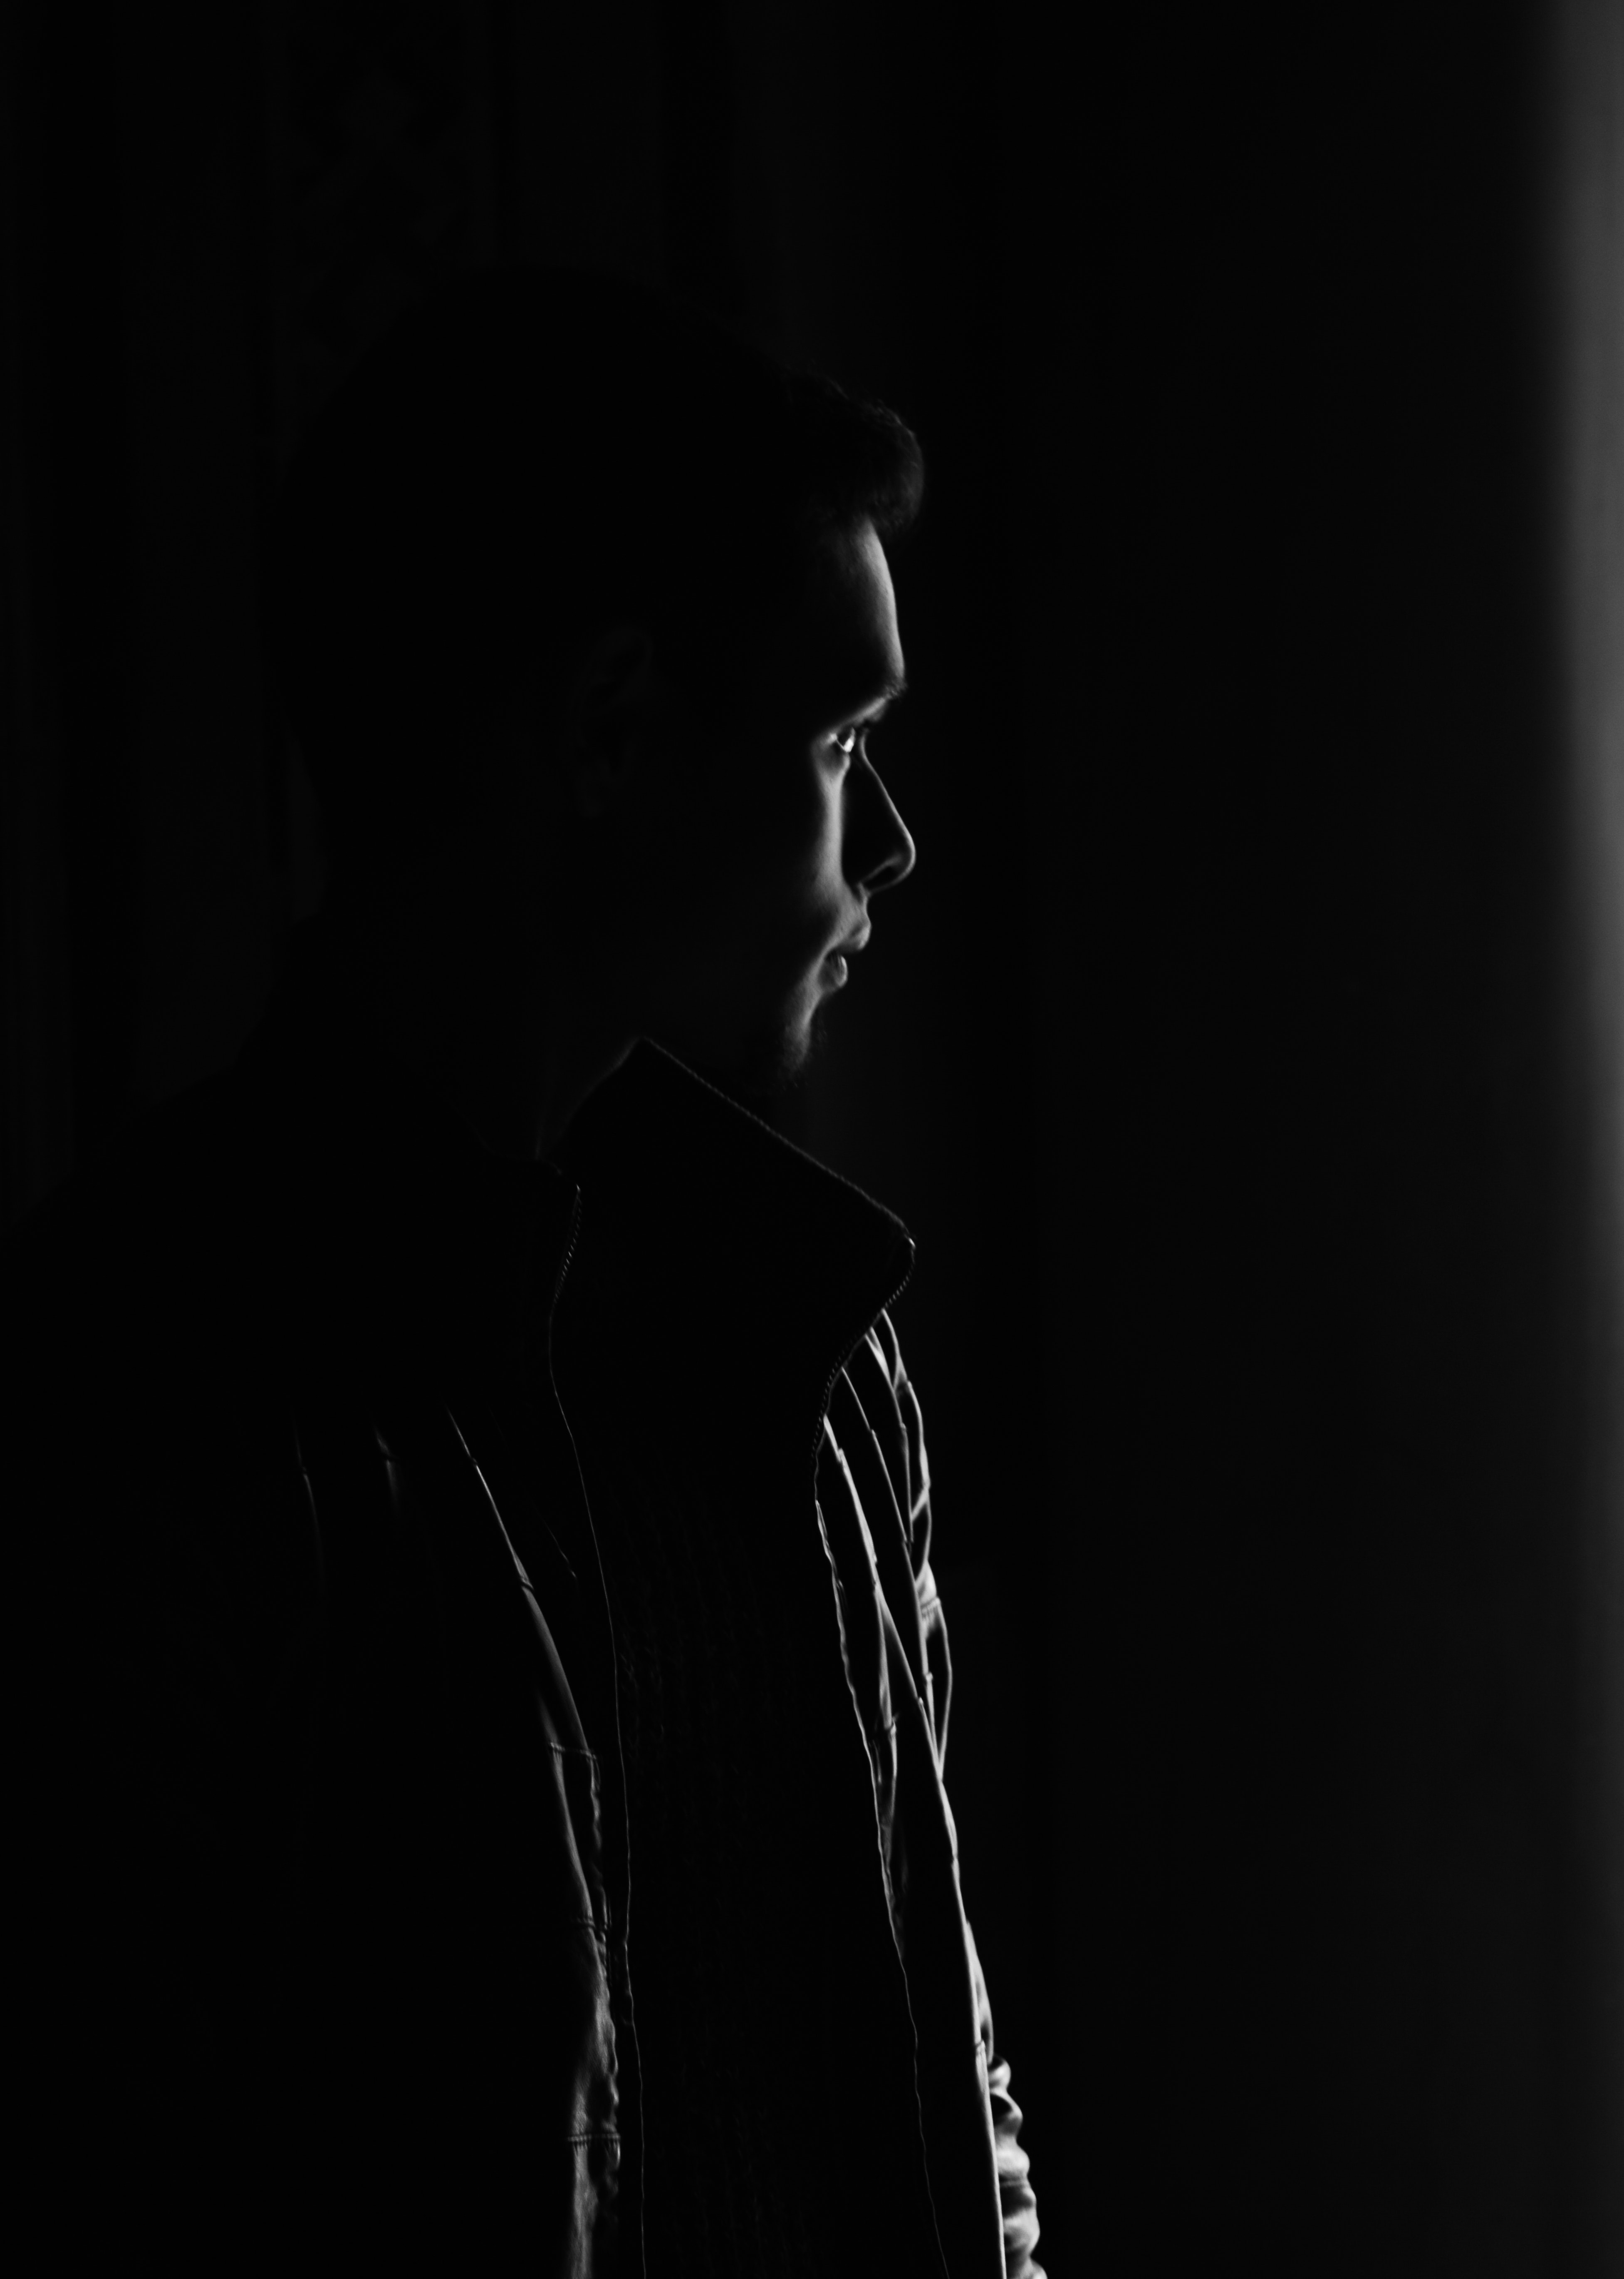 Grayscale Photo of Man, Black, Person, Studio, Silhouette, HQ Photo